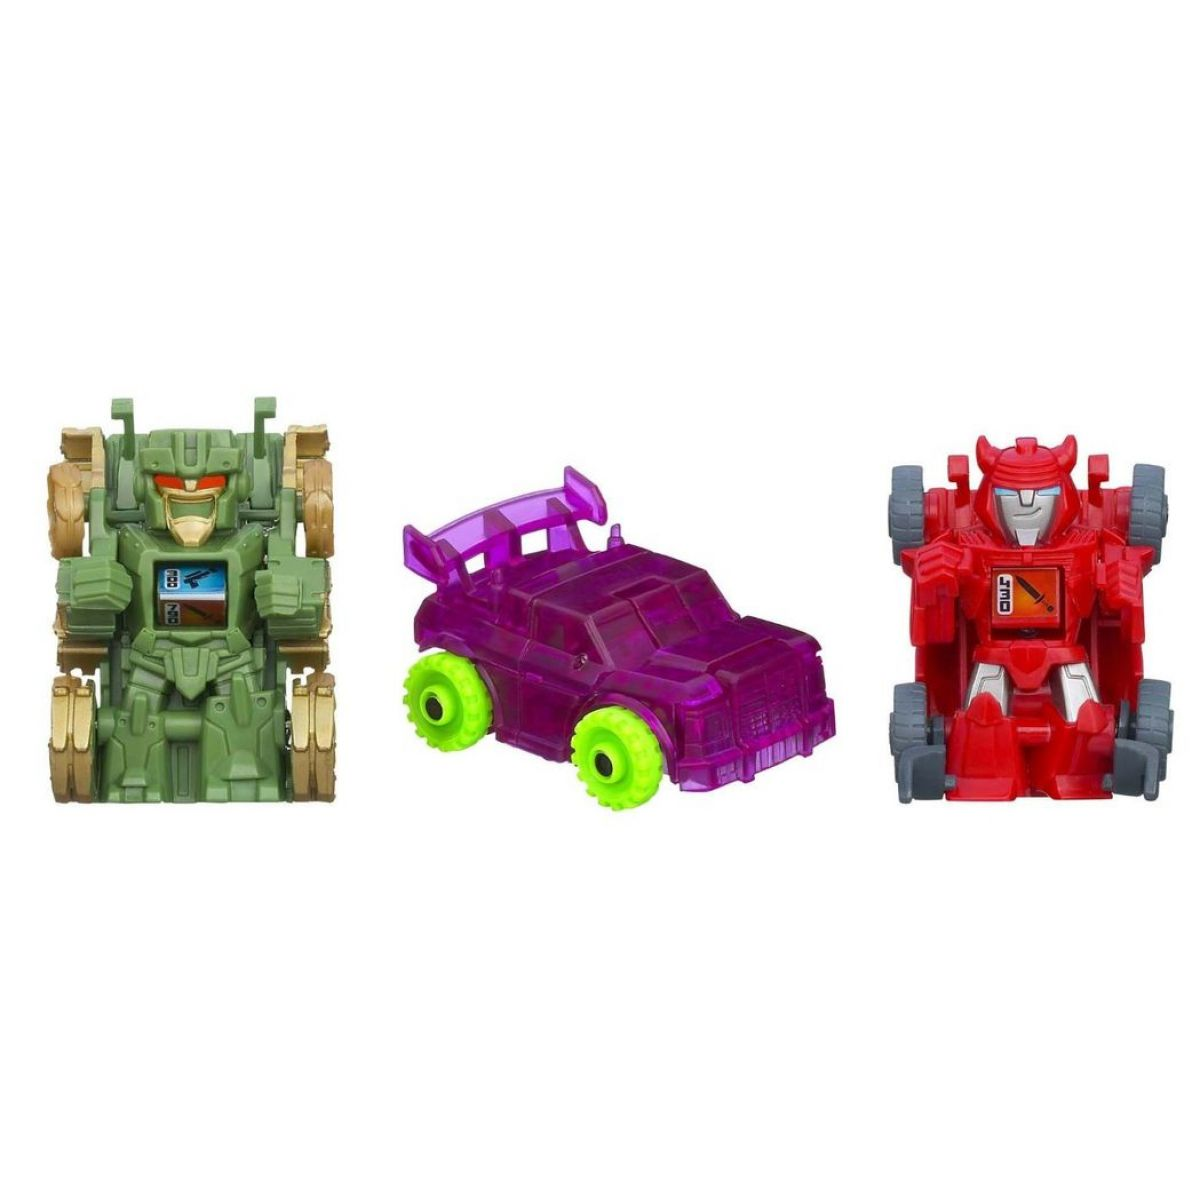 Hasbro Transformers Bot Shots 3pack - Cliffjumper Brawl Boss